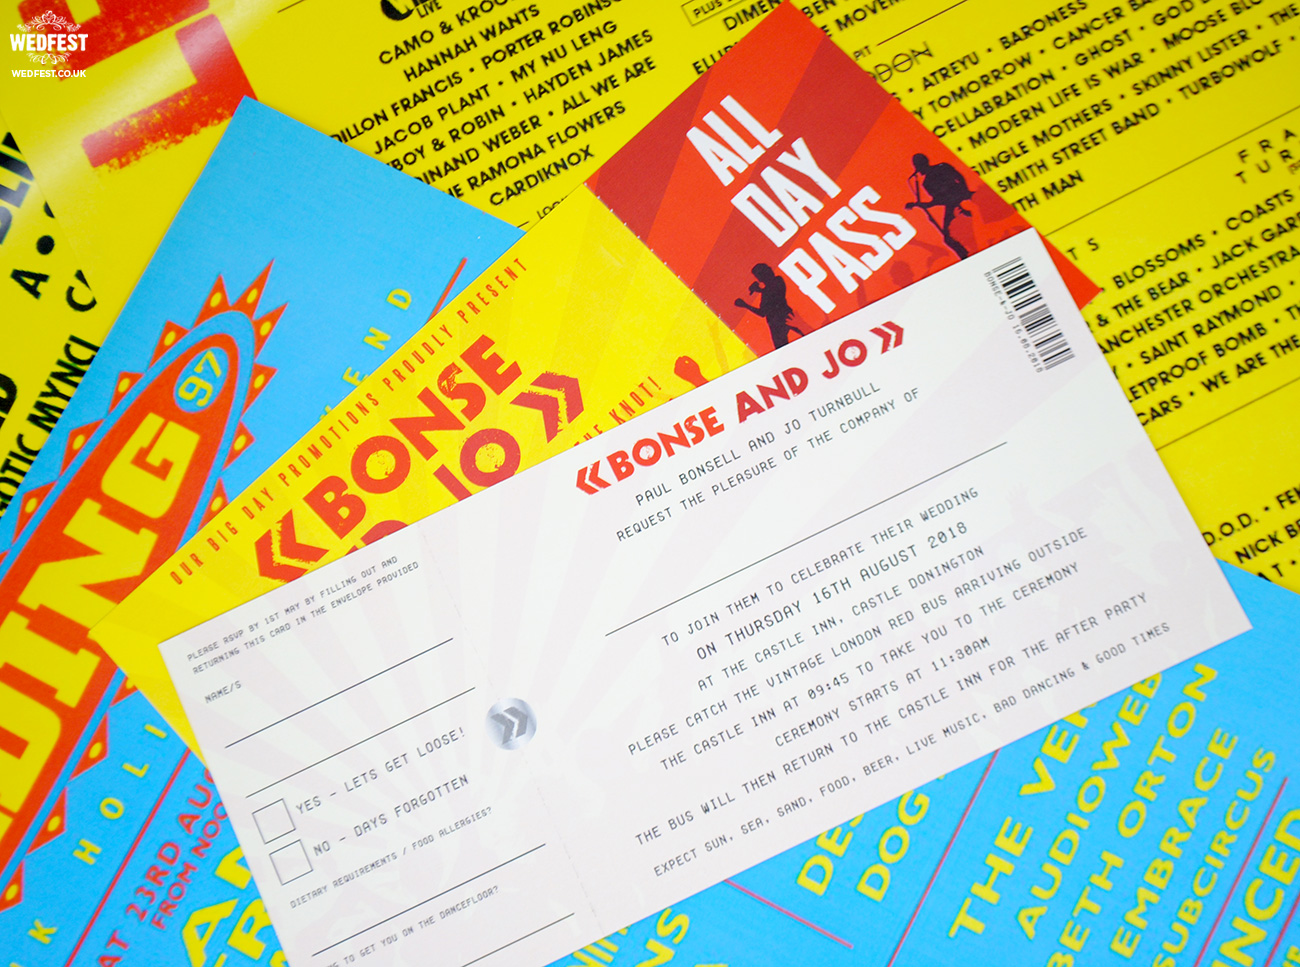 wedfest reading leeds festival wedding ticket invitations